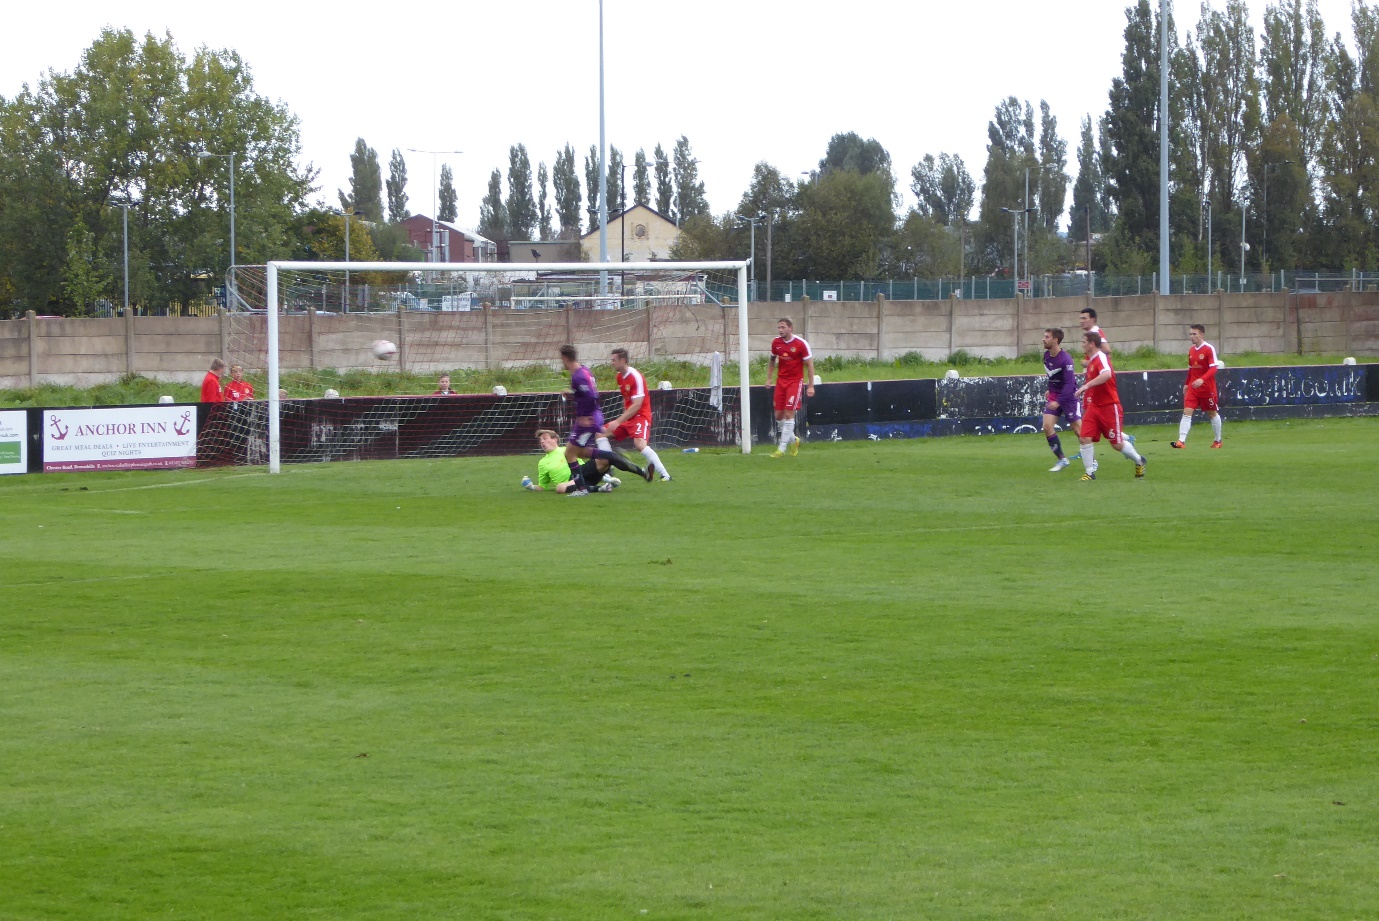 So close as the Wood's keeper responds well in this first half foray by Loughborough